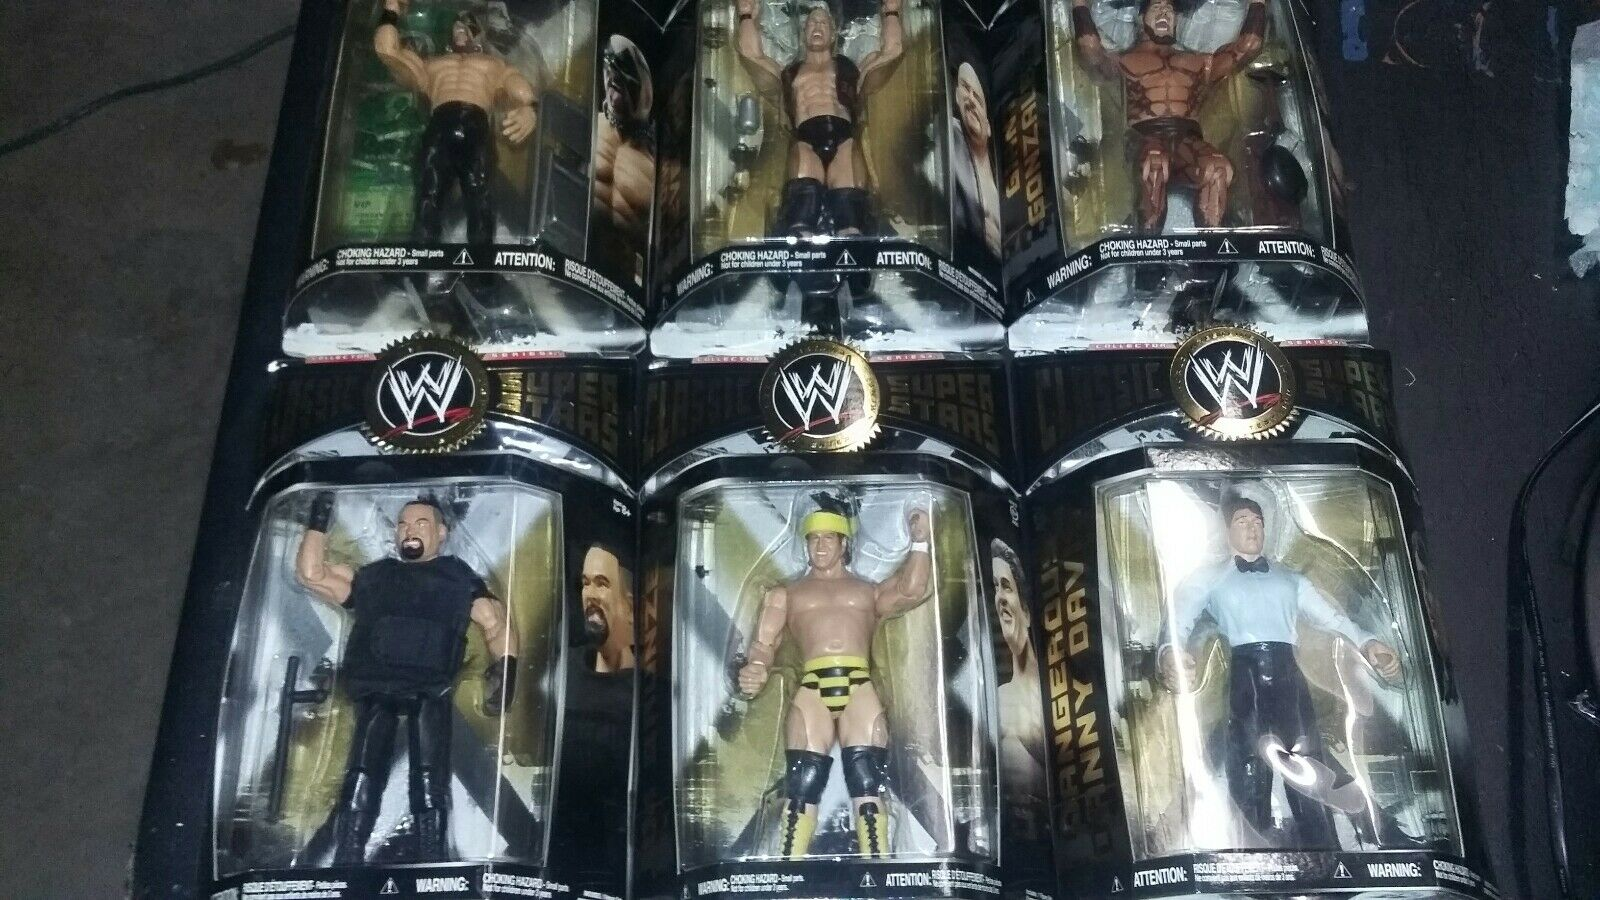 Lot of 6 WWE WWF Classic Superstars Action Figures big boss man Steve austin +